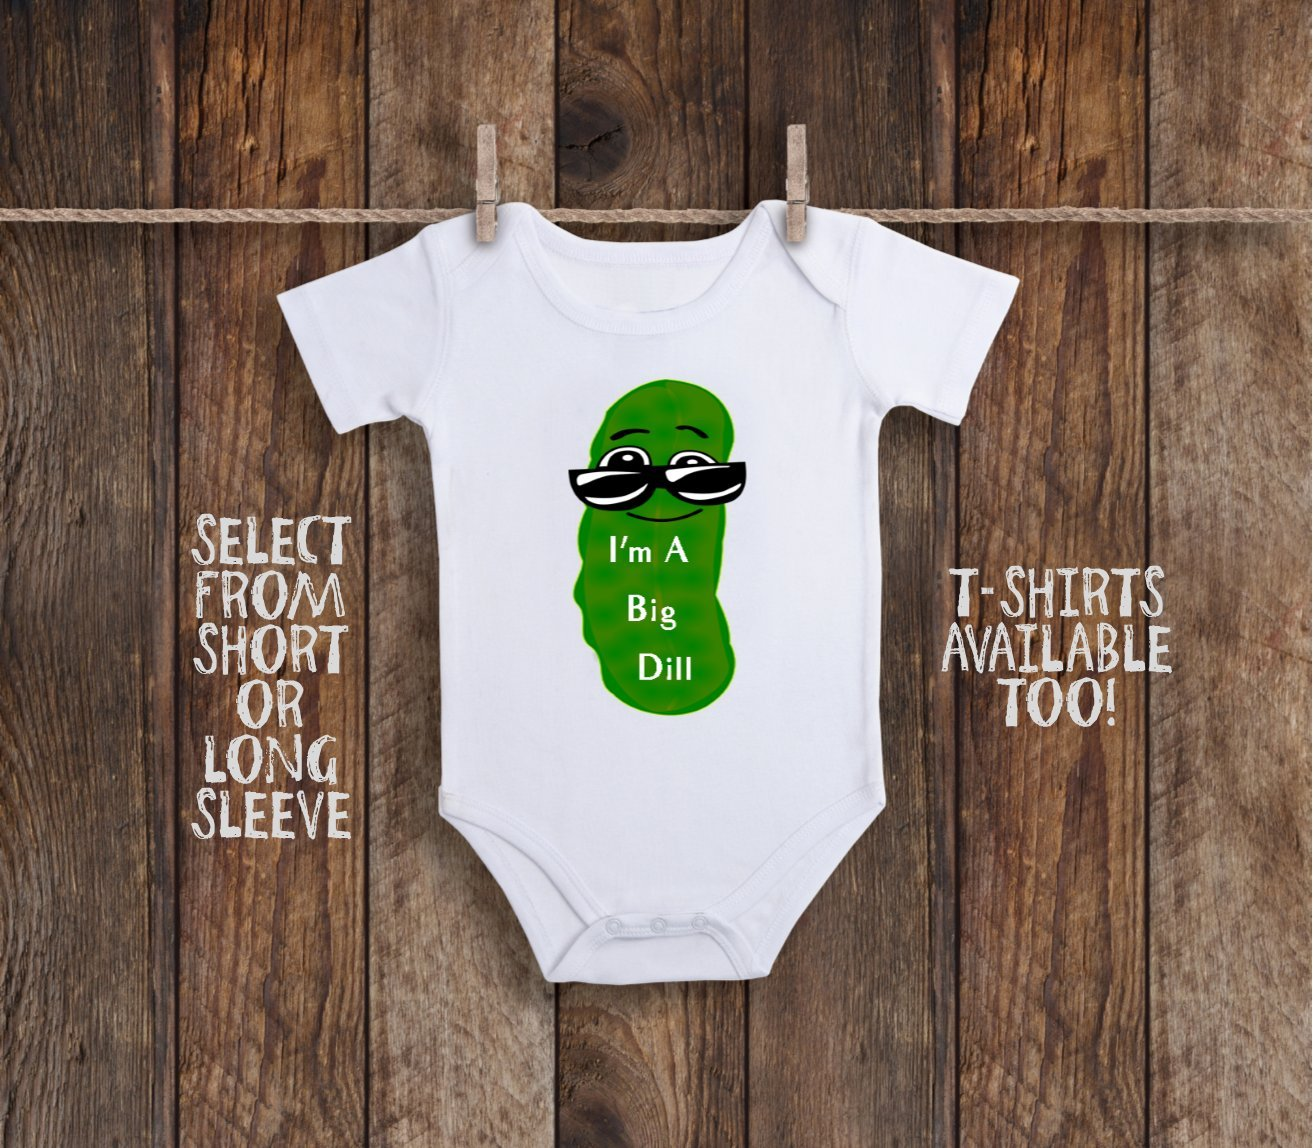 Funny I'm a Big Dill Pickle Toddler Kids Tee Shirt or Baby Bodysuit